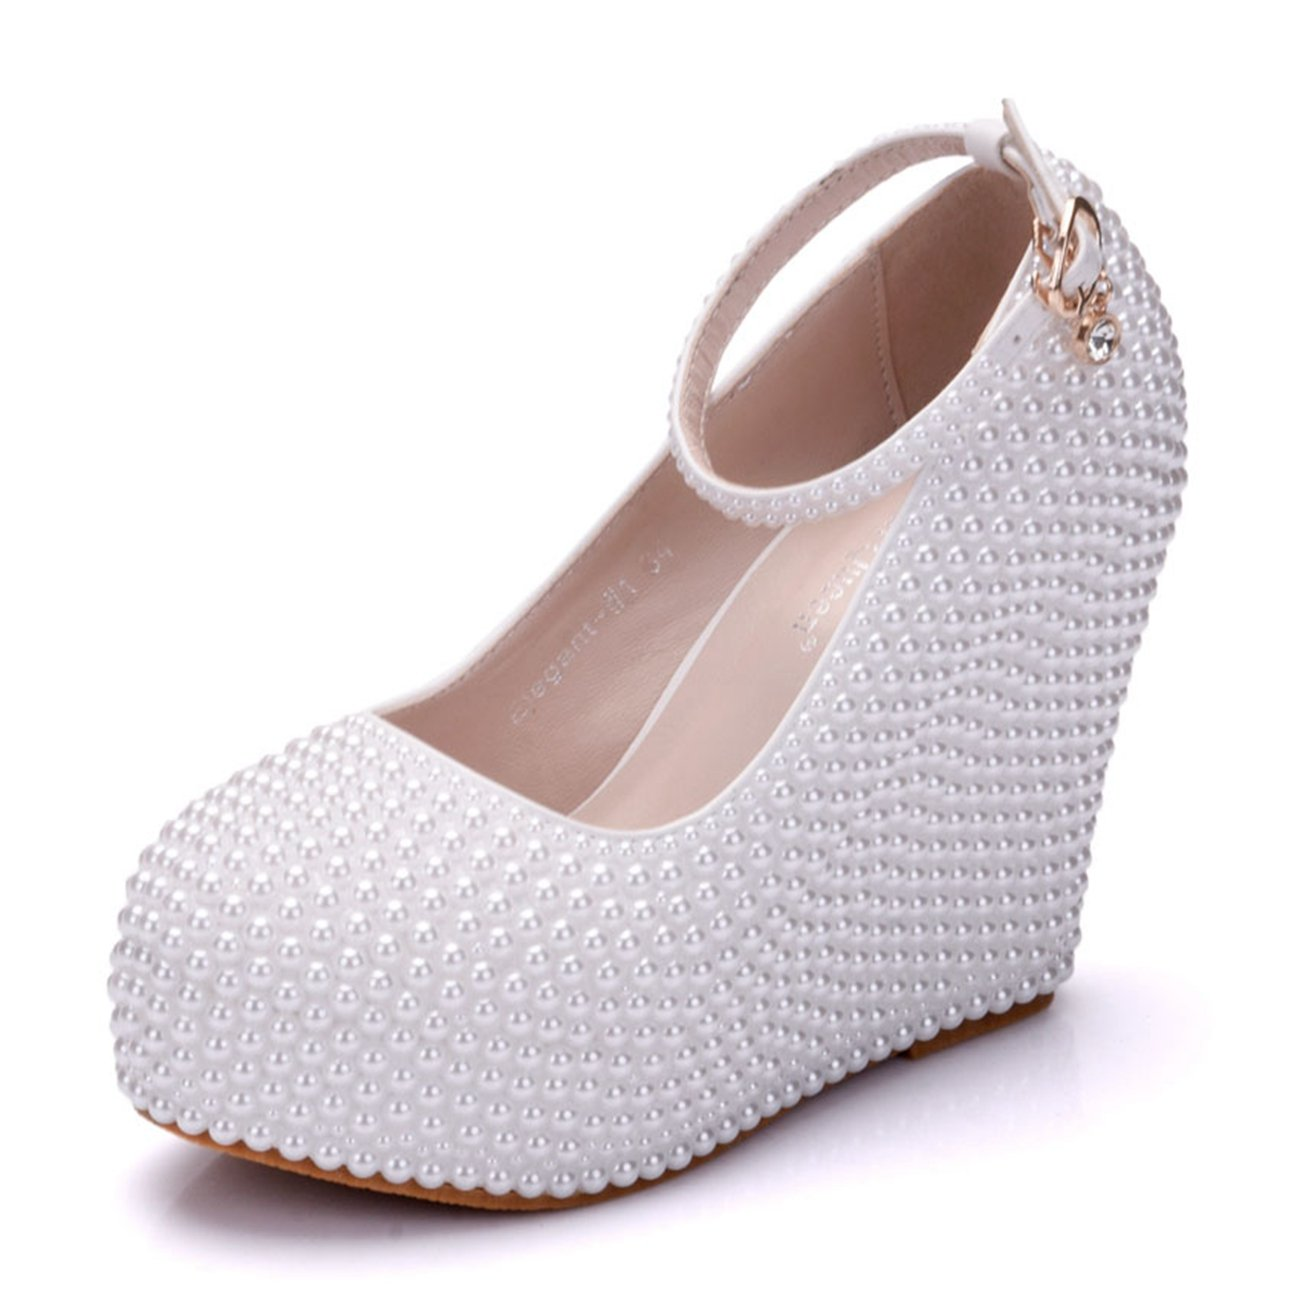 Minishion Womens Hidden High Platform Pearl Beading Wedge Heel Wedding Evening Shoes B07552XT4Y 5.5 B(M) US|White-10cm Heel